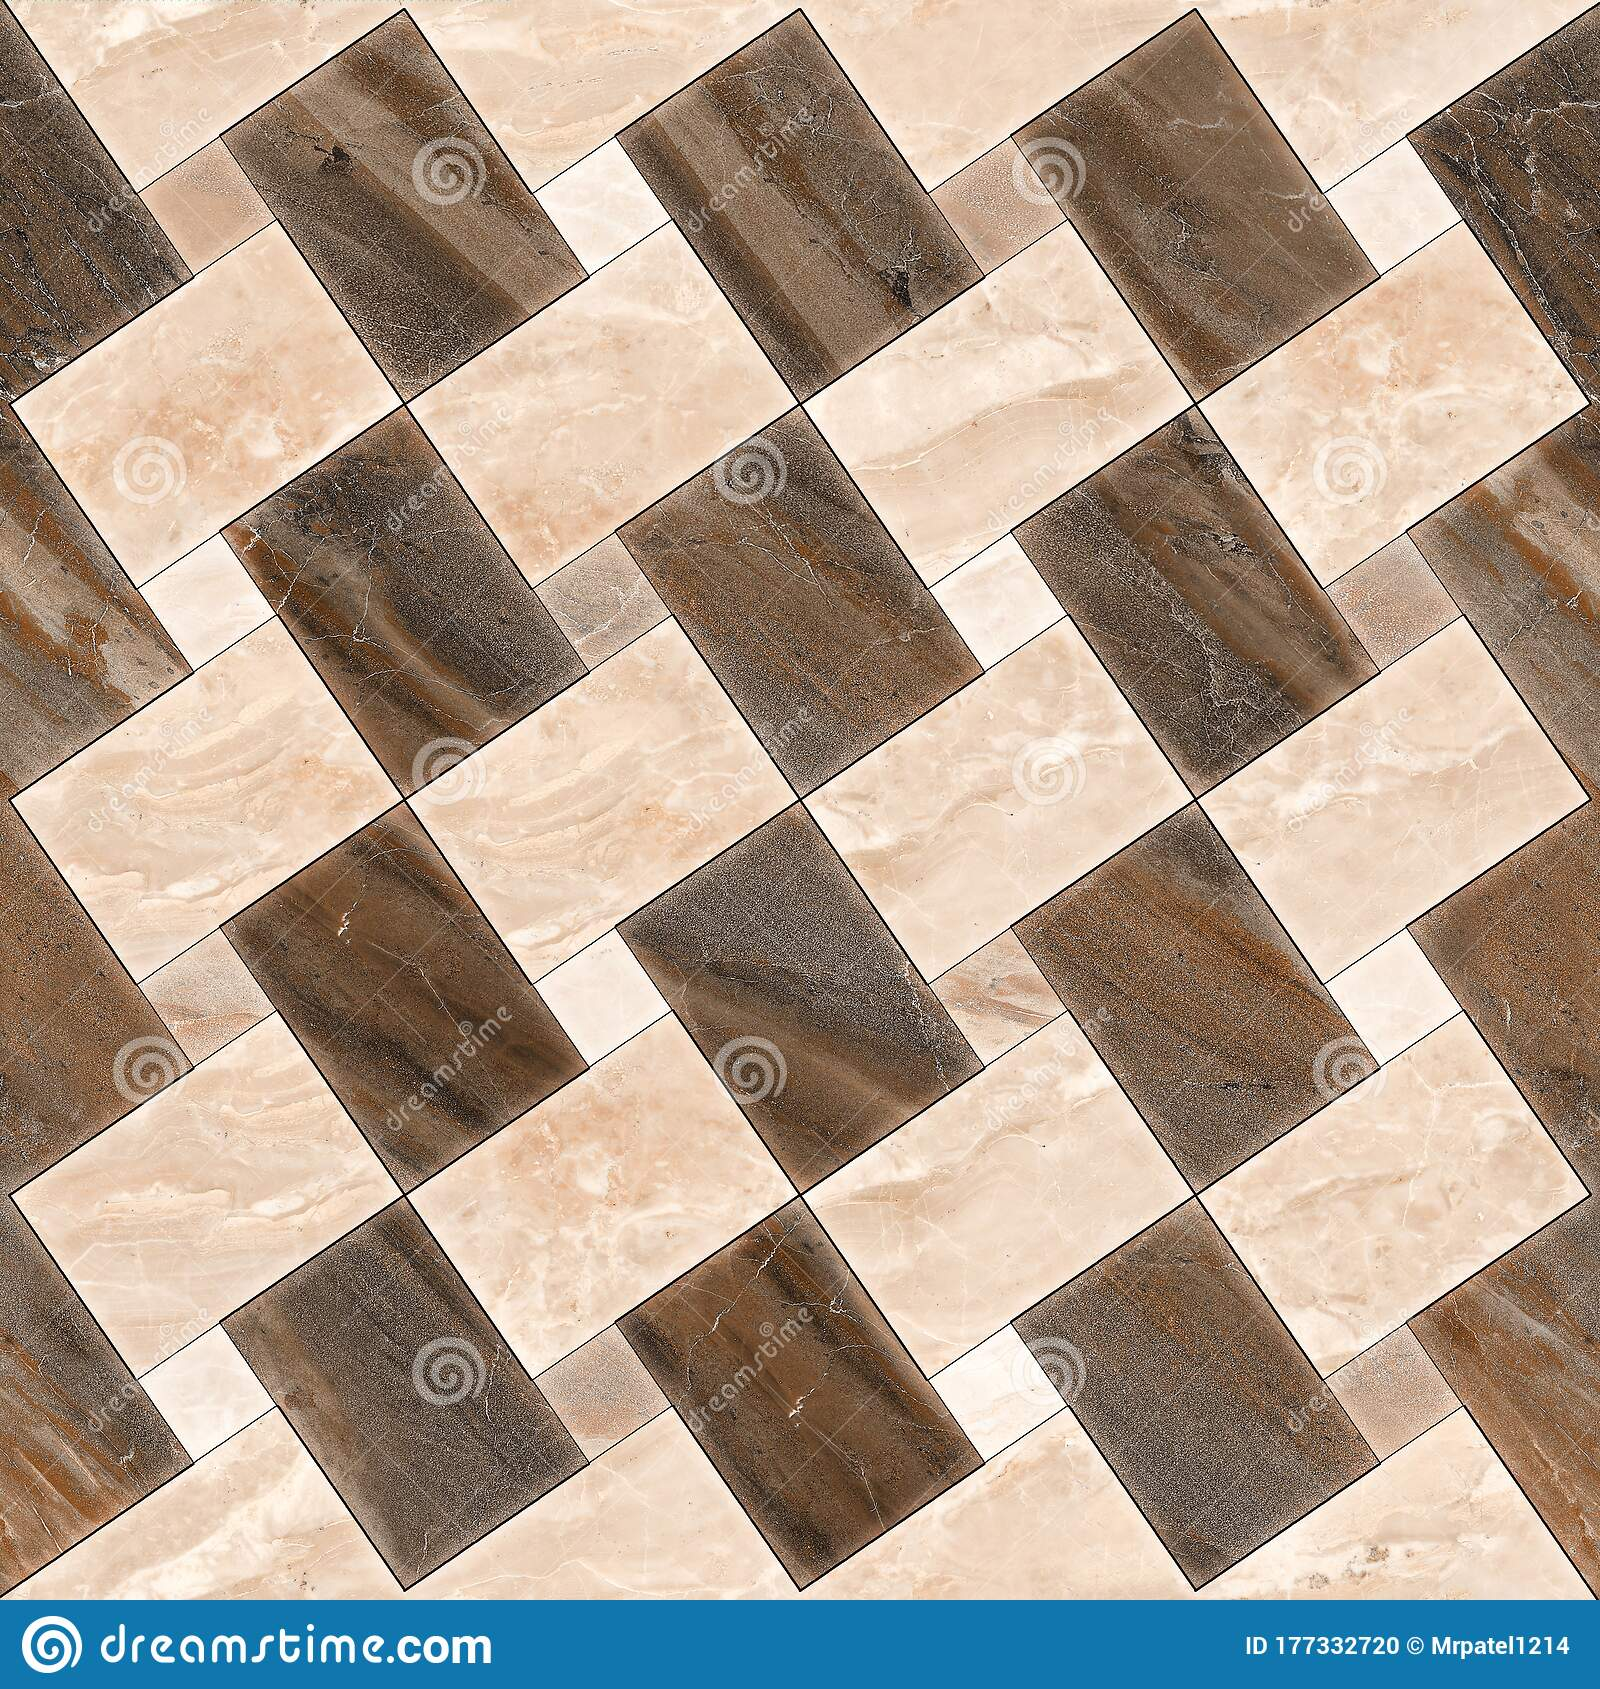 Marble Geometric Pattern Mosaic Decor Wall And Floor Tile Stock Photo Image Of Flooring Decoration 177332720